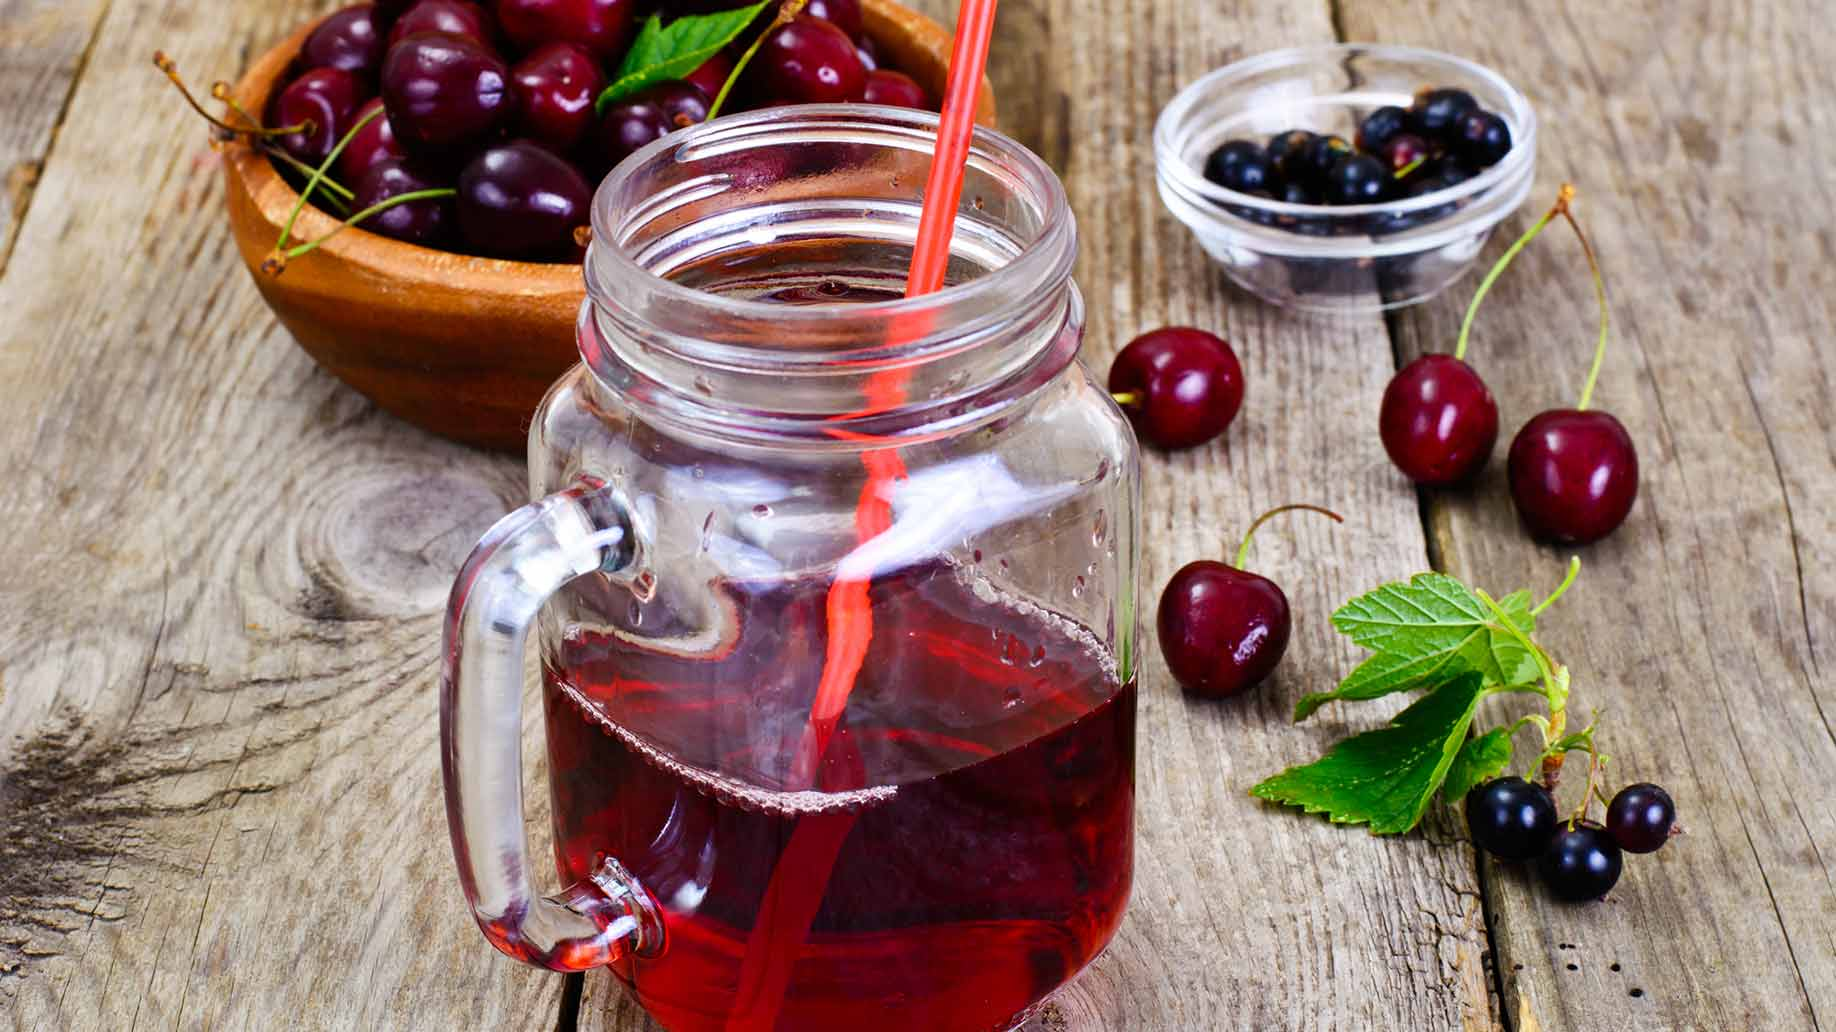 tart cherries juice gout flair up inflammation natural remedies